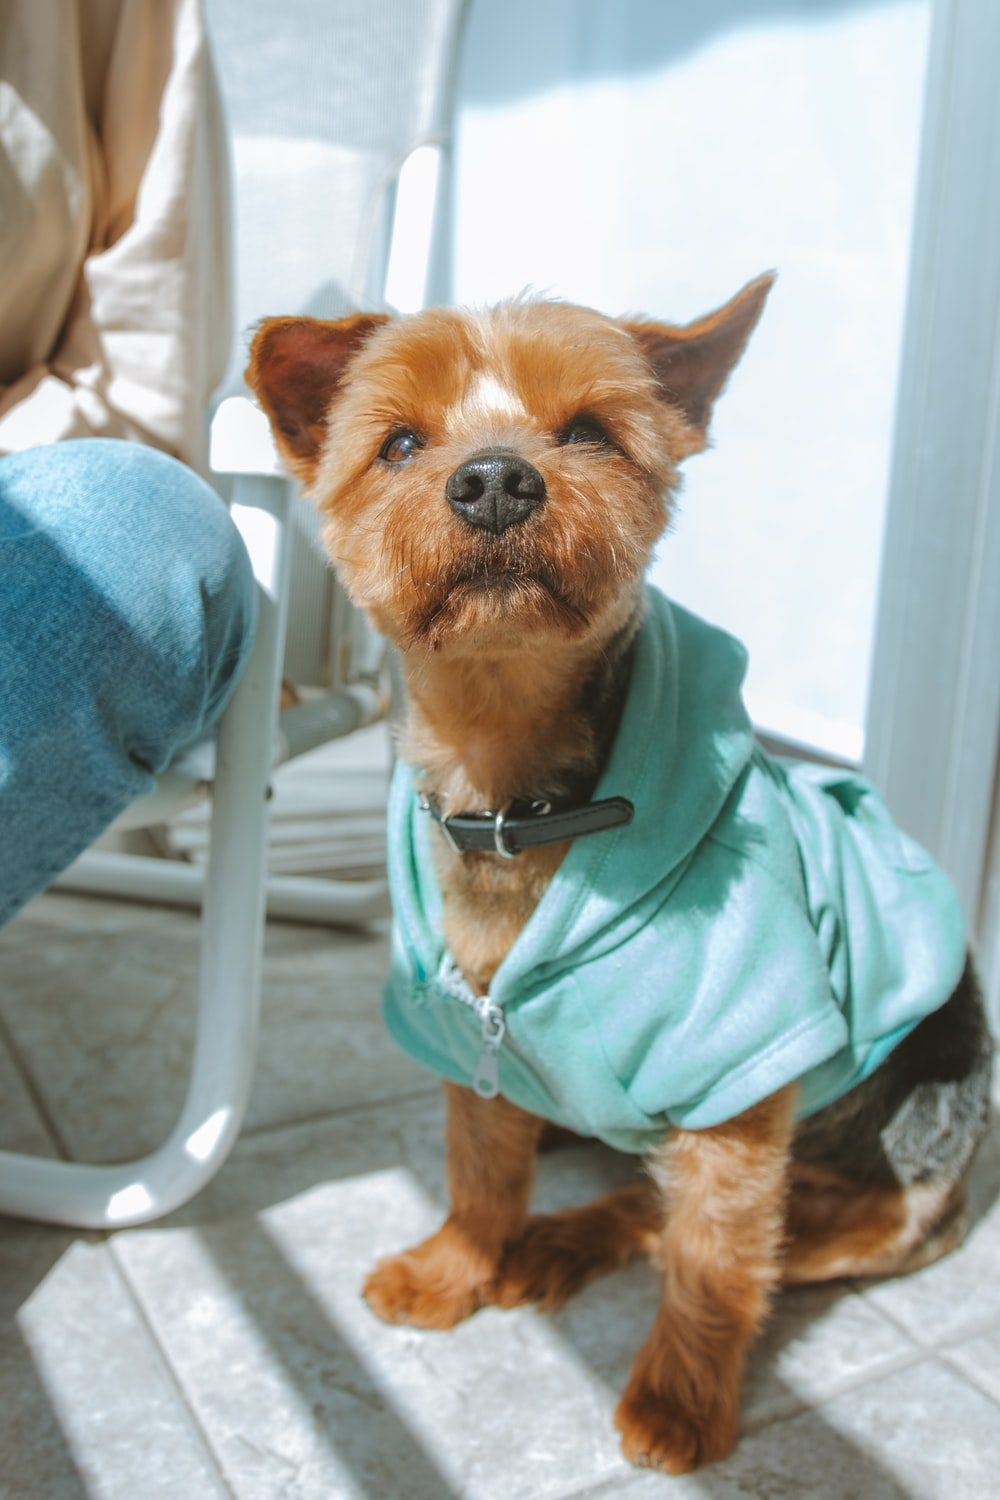 brown long coated small dog in teal shirt